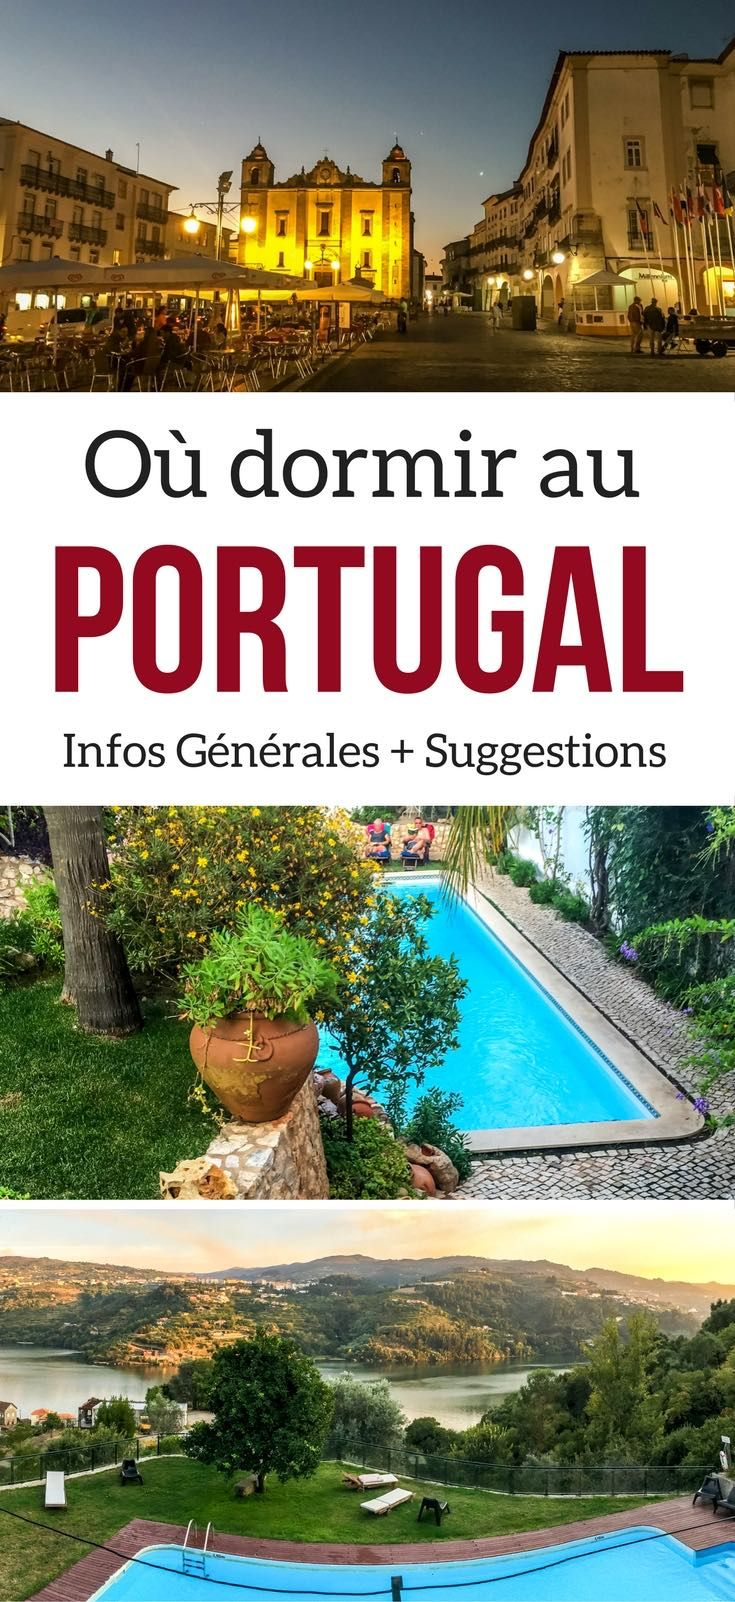 Portugal Voyage - Ou dormir au Portugal - Options et suggestions: hotels au Portugal, Locations d'appartements ou camping au Portugal | Portugal Lisbonne | Portugal hotels